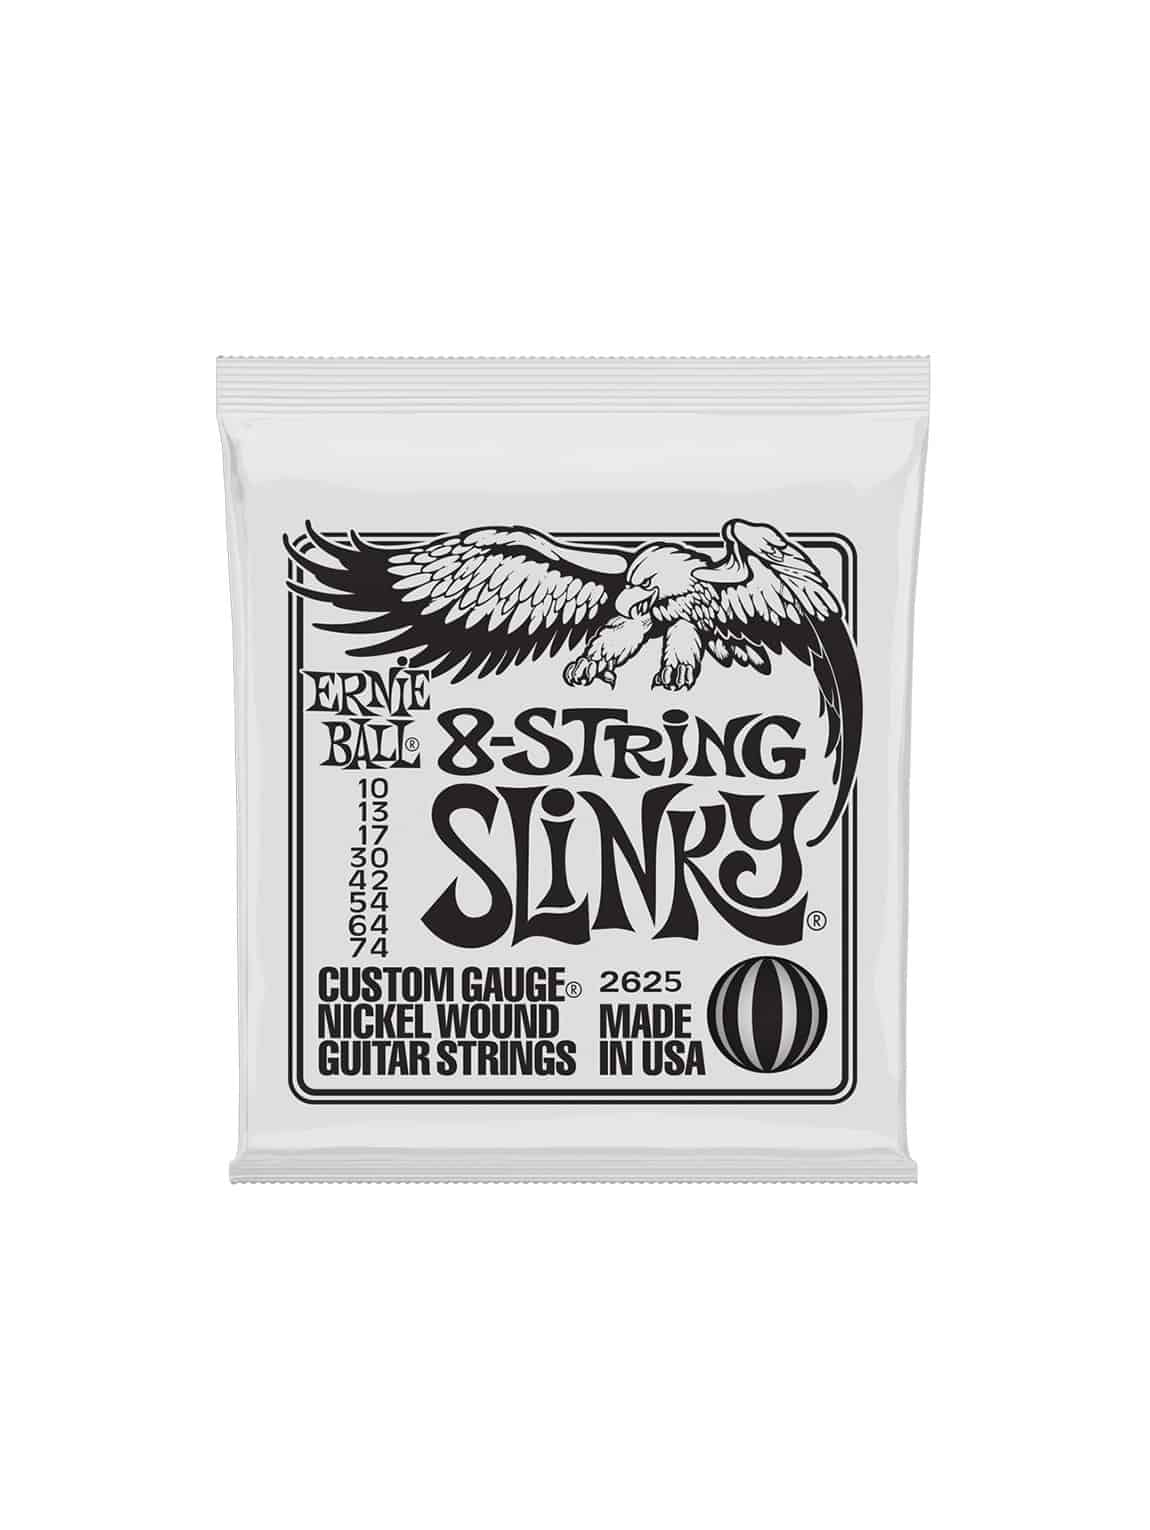 Ernie Ball -2625 -Slinky 8- String Electric 10-74 Gauge